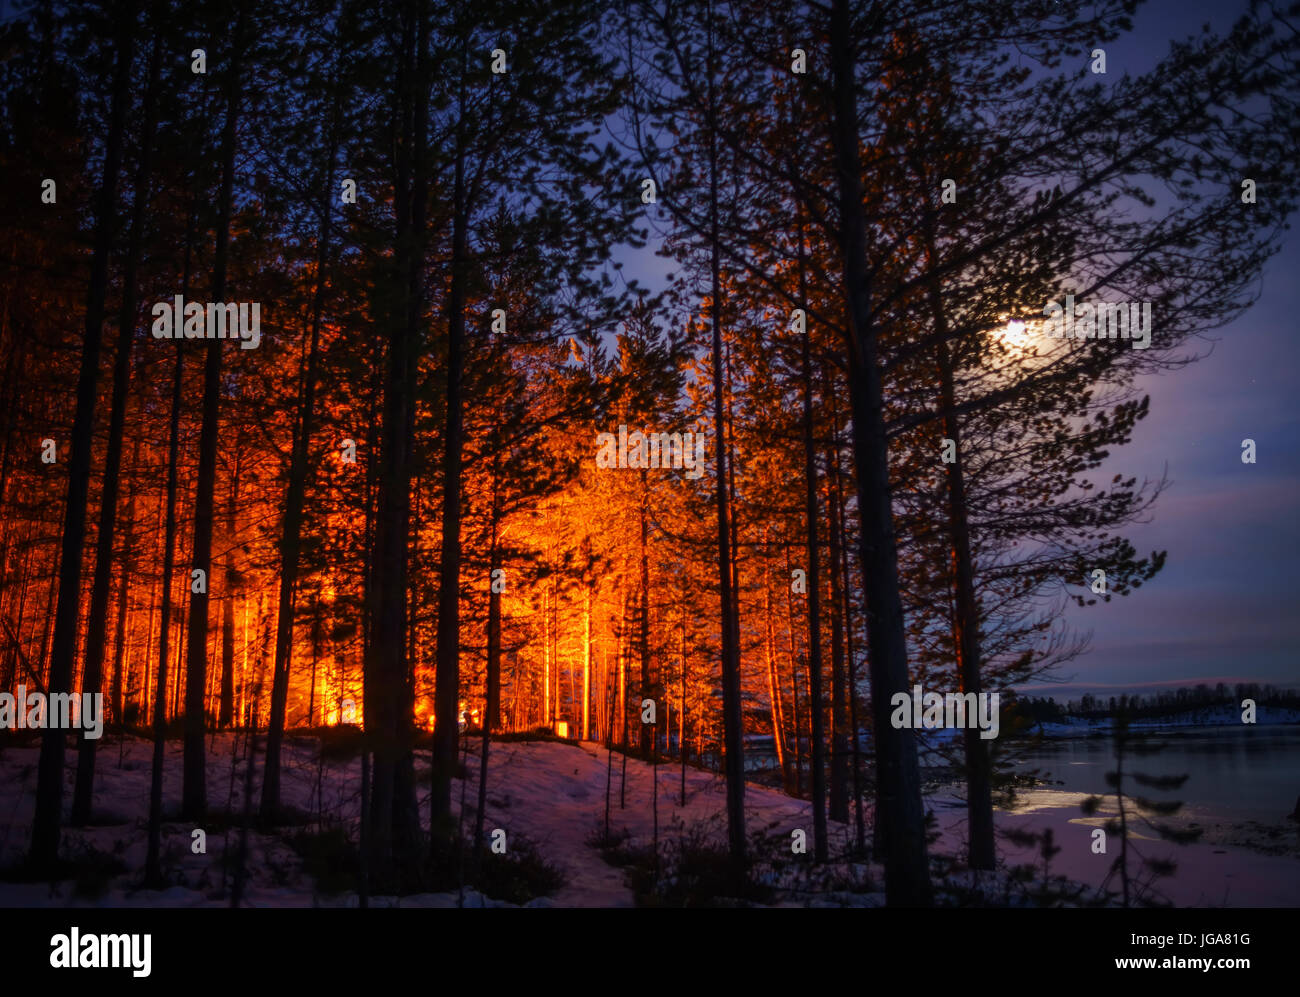 Moonlight and orange glow from a campfire, Lapland, Finland - Stock Image